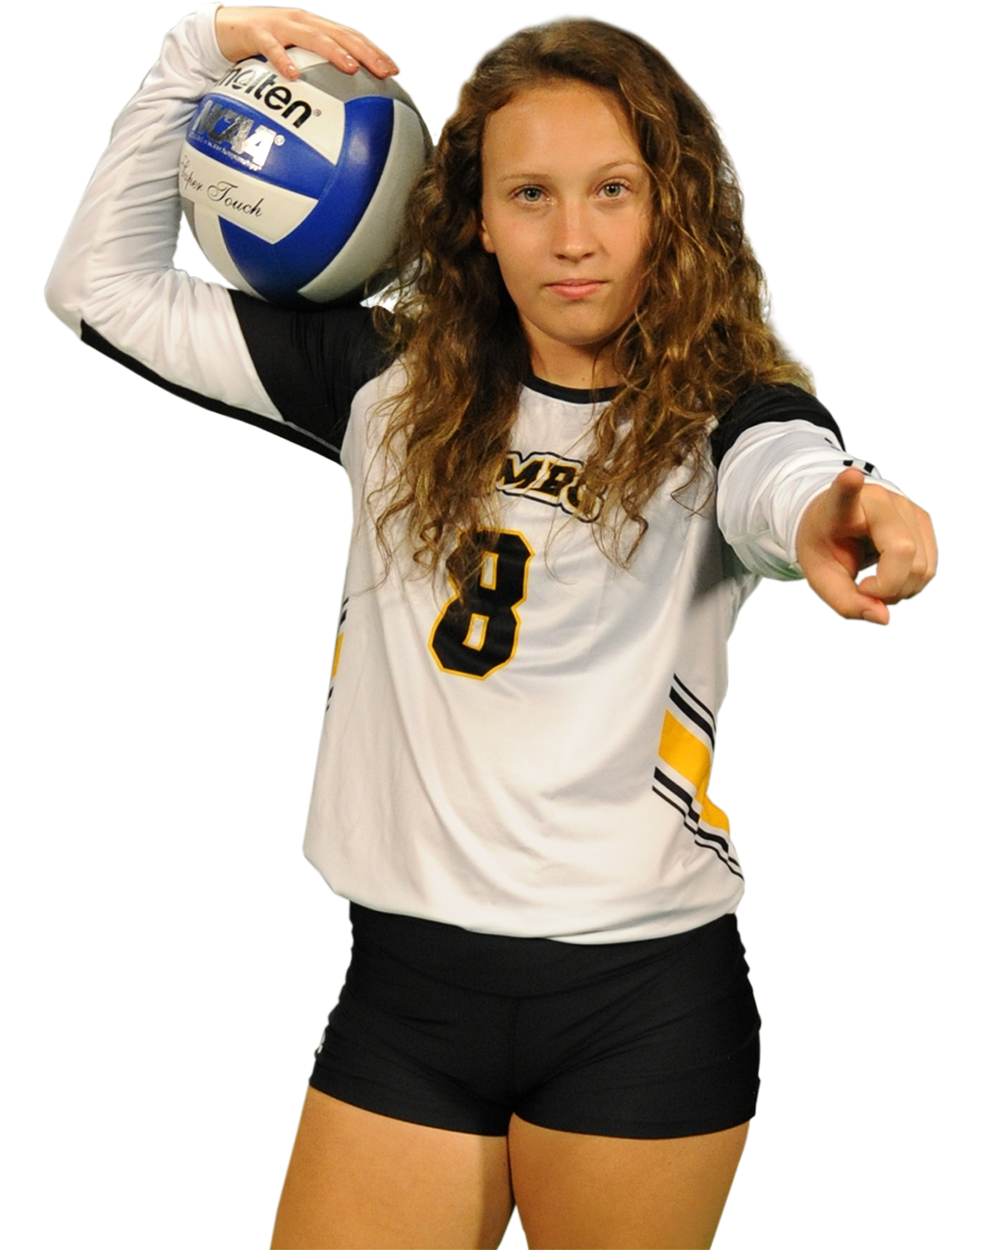 Kristin Watson  Two-Time All-Conference Selection & 2016 America East Defensive Specialist of the Year